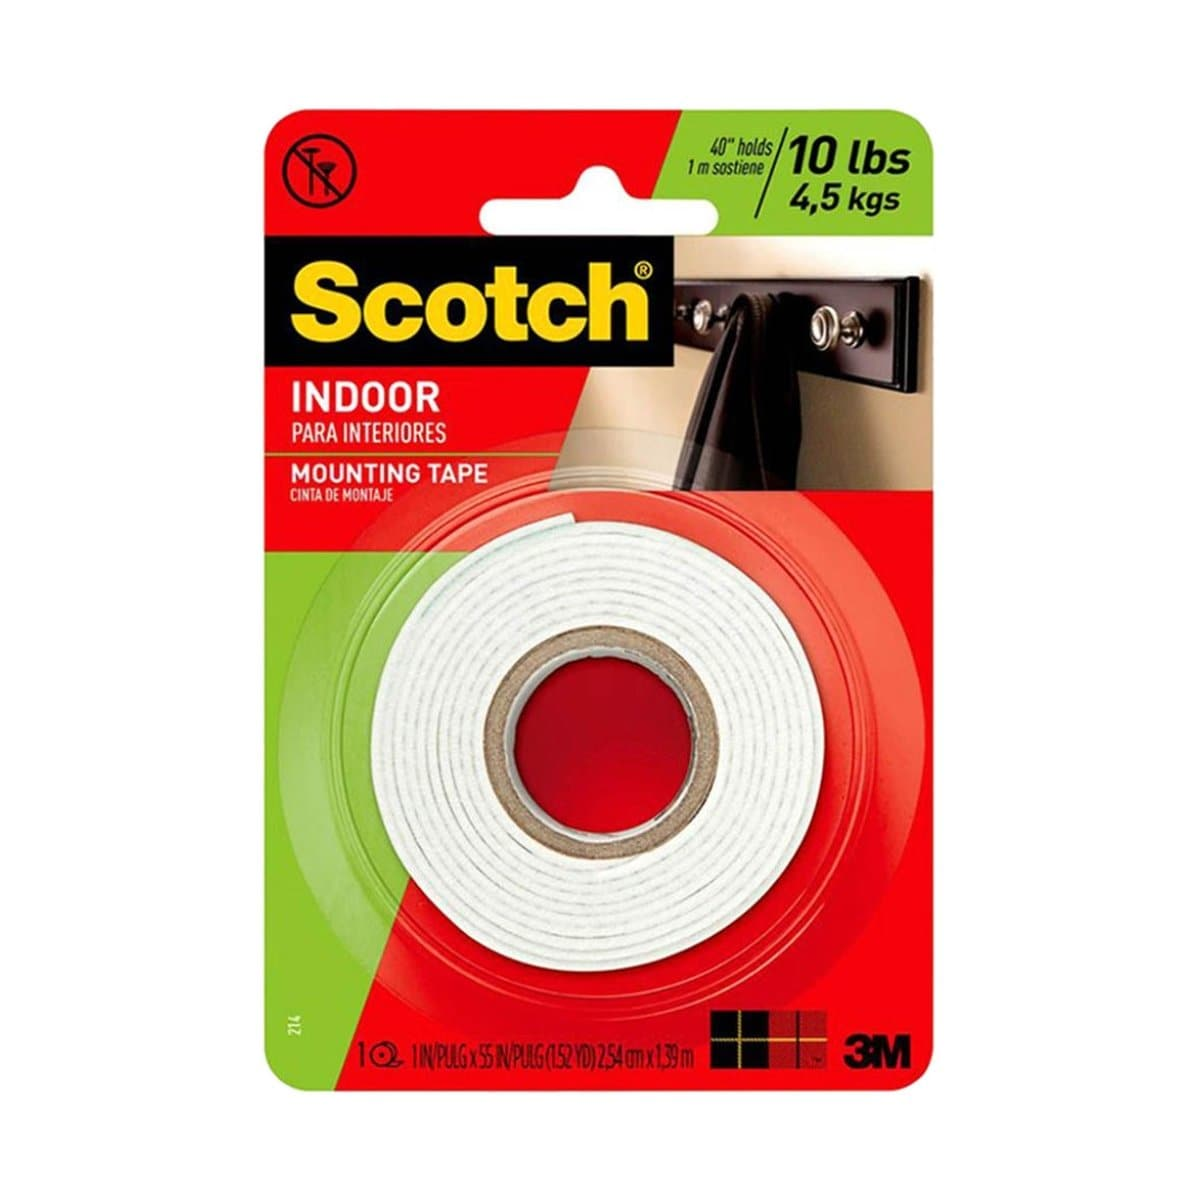 3M Scotch Mounting Tape 114, Indoor, 1 x 50 inches